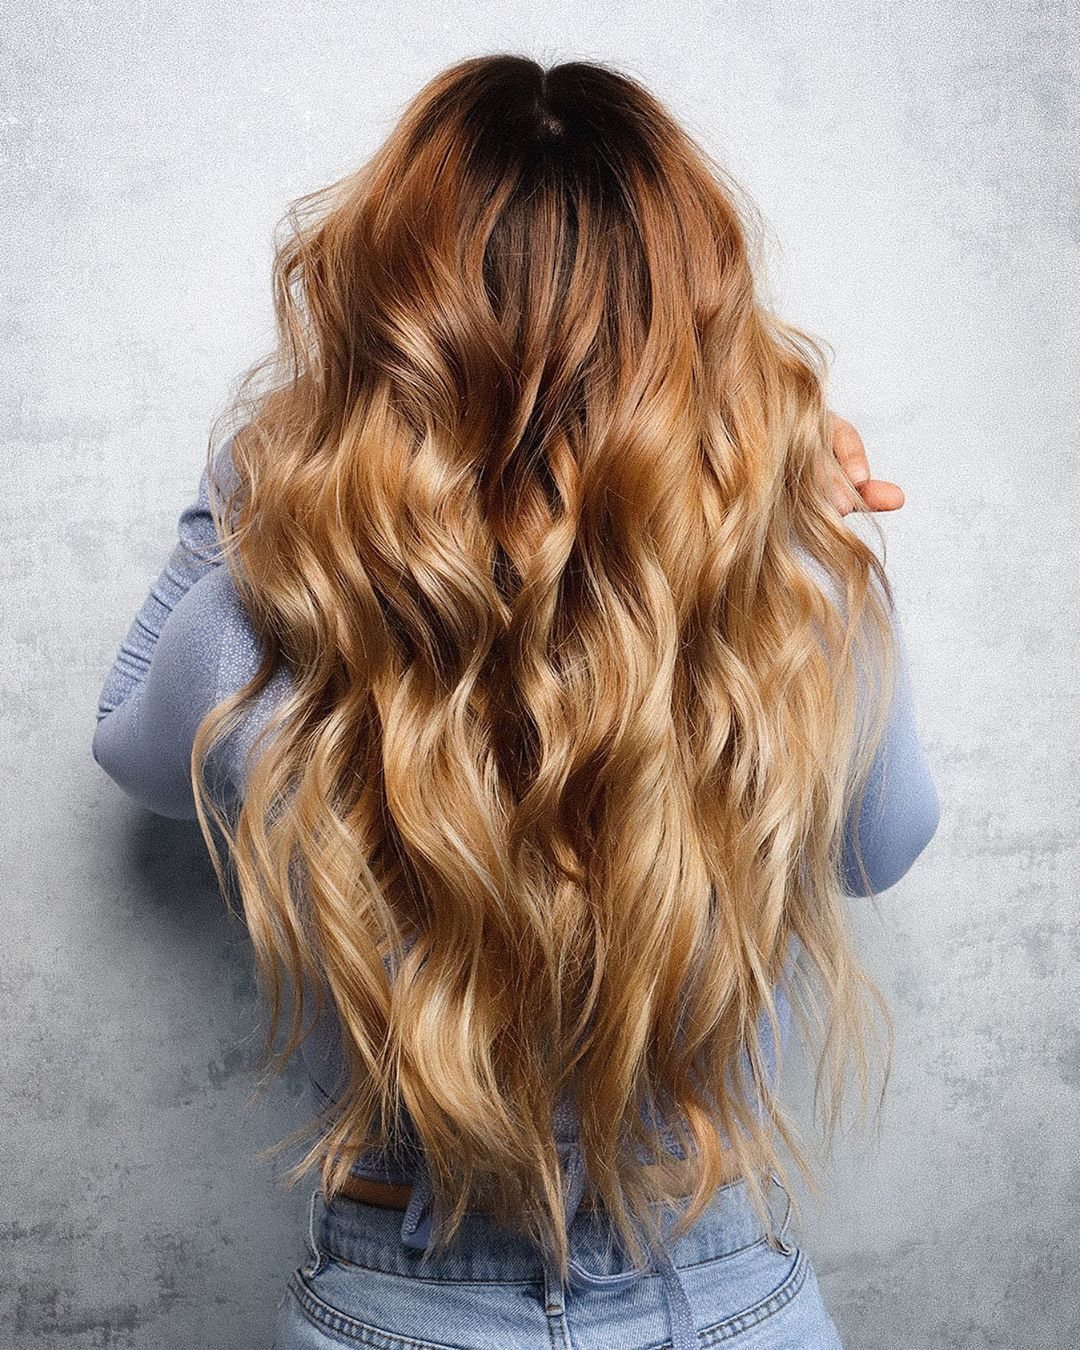 Long Caramel to Blonde Ombre Hair